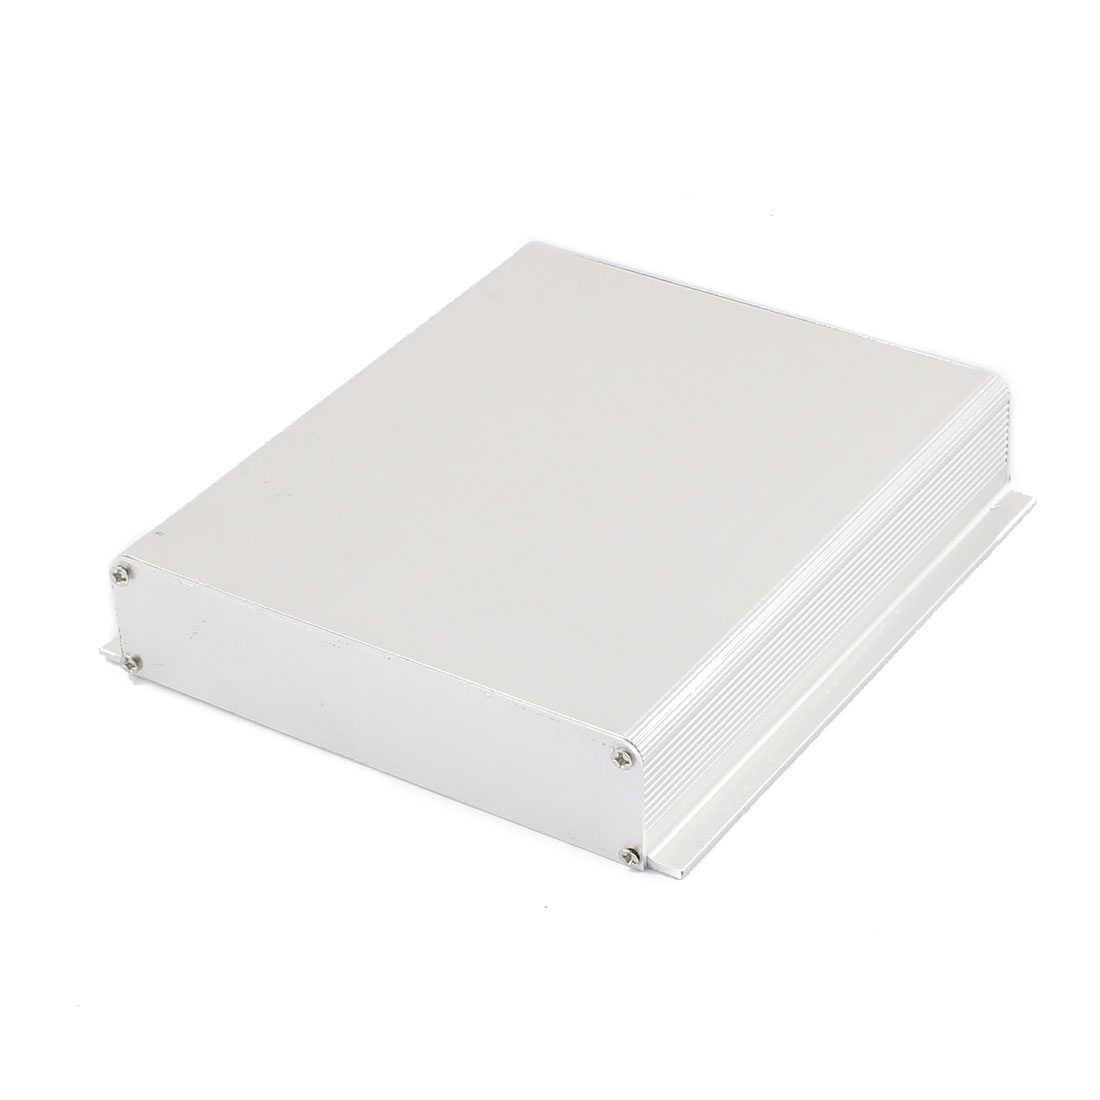 164 x 155 x 33mm Multi-purpose Electronic Extruded Aluminum Enclosure Silver Tone